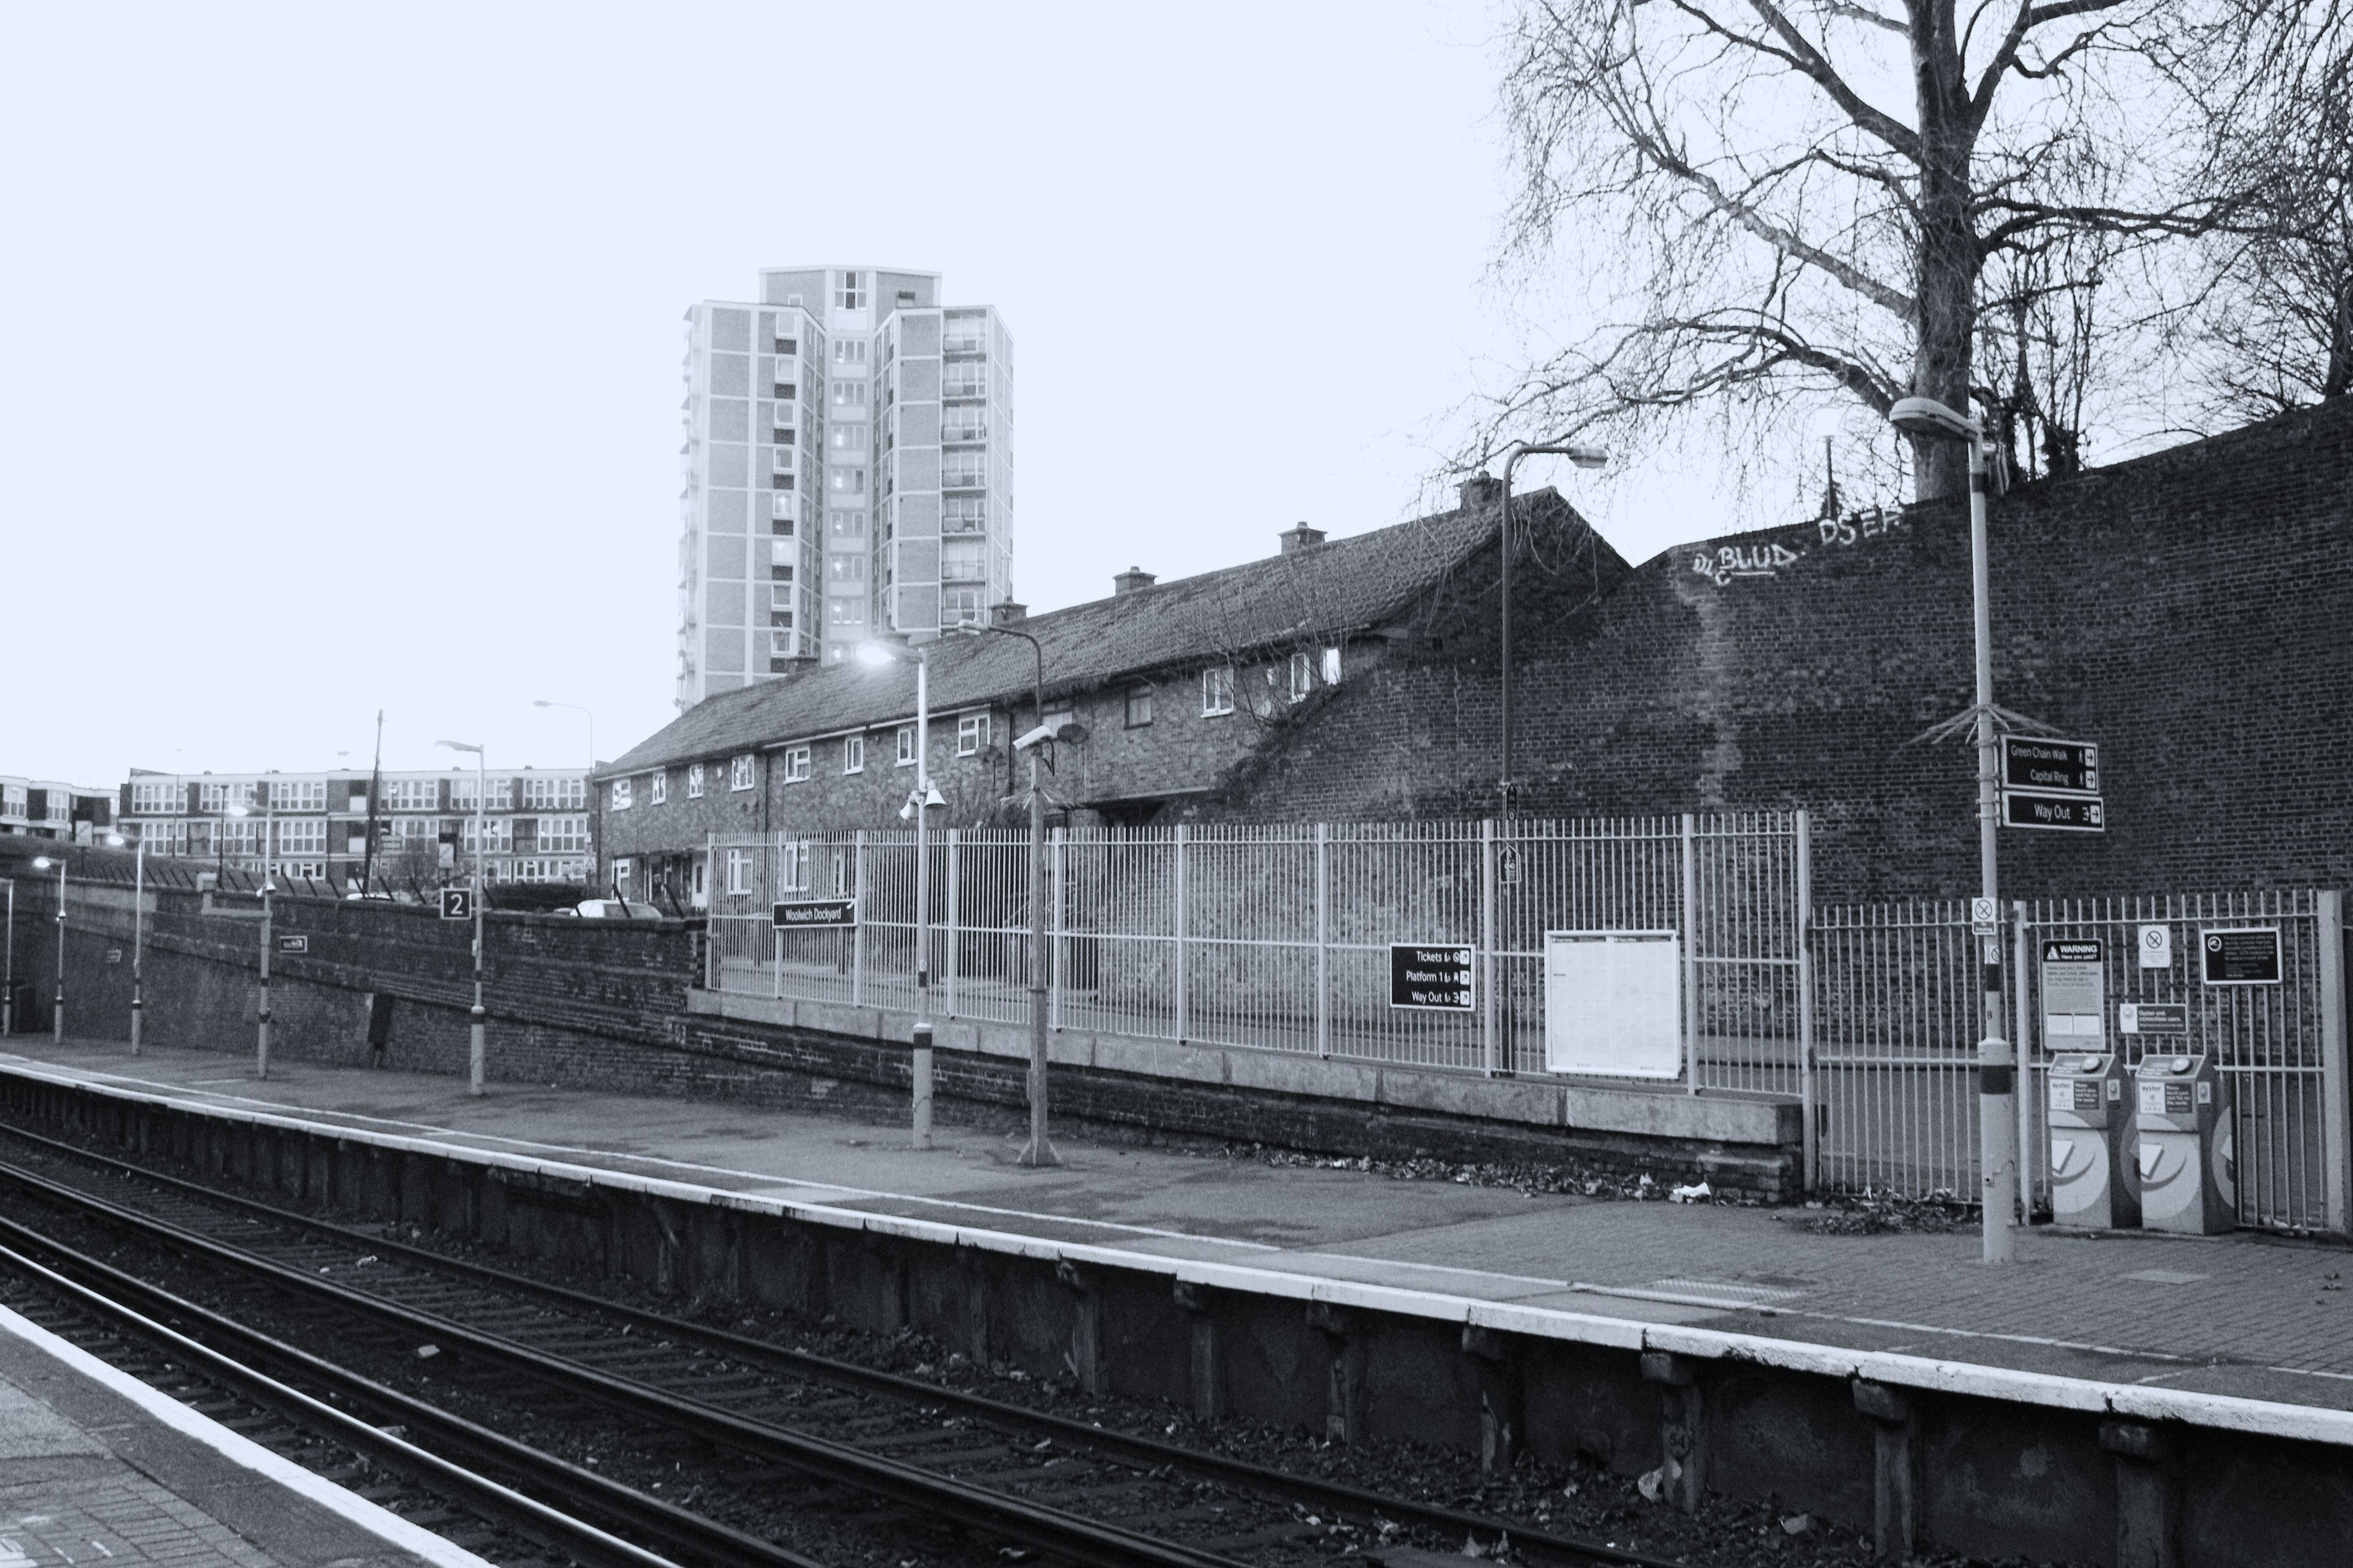 Grasscayle Photo of Fence Near Building, Architecture, Railway line, Tree, Train tracks, HQ Photo